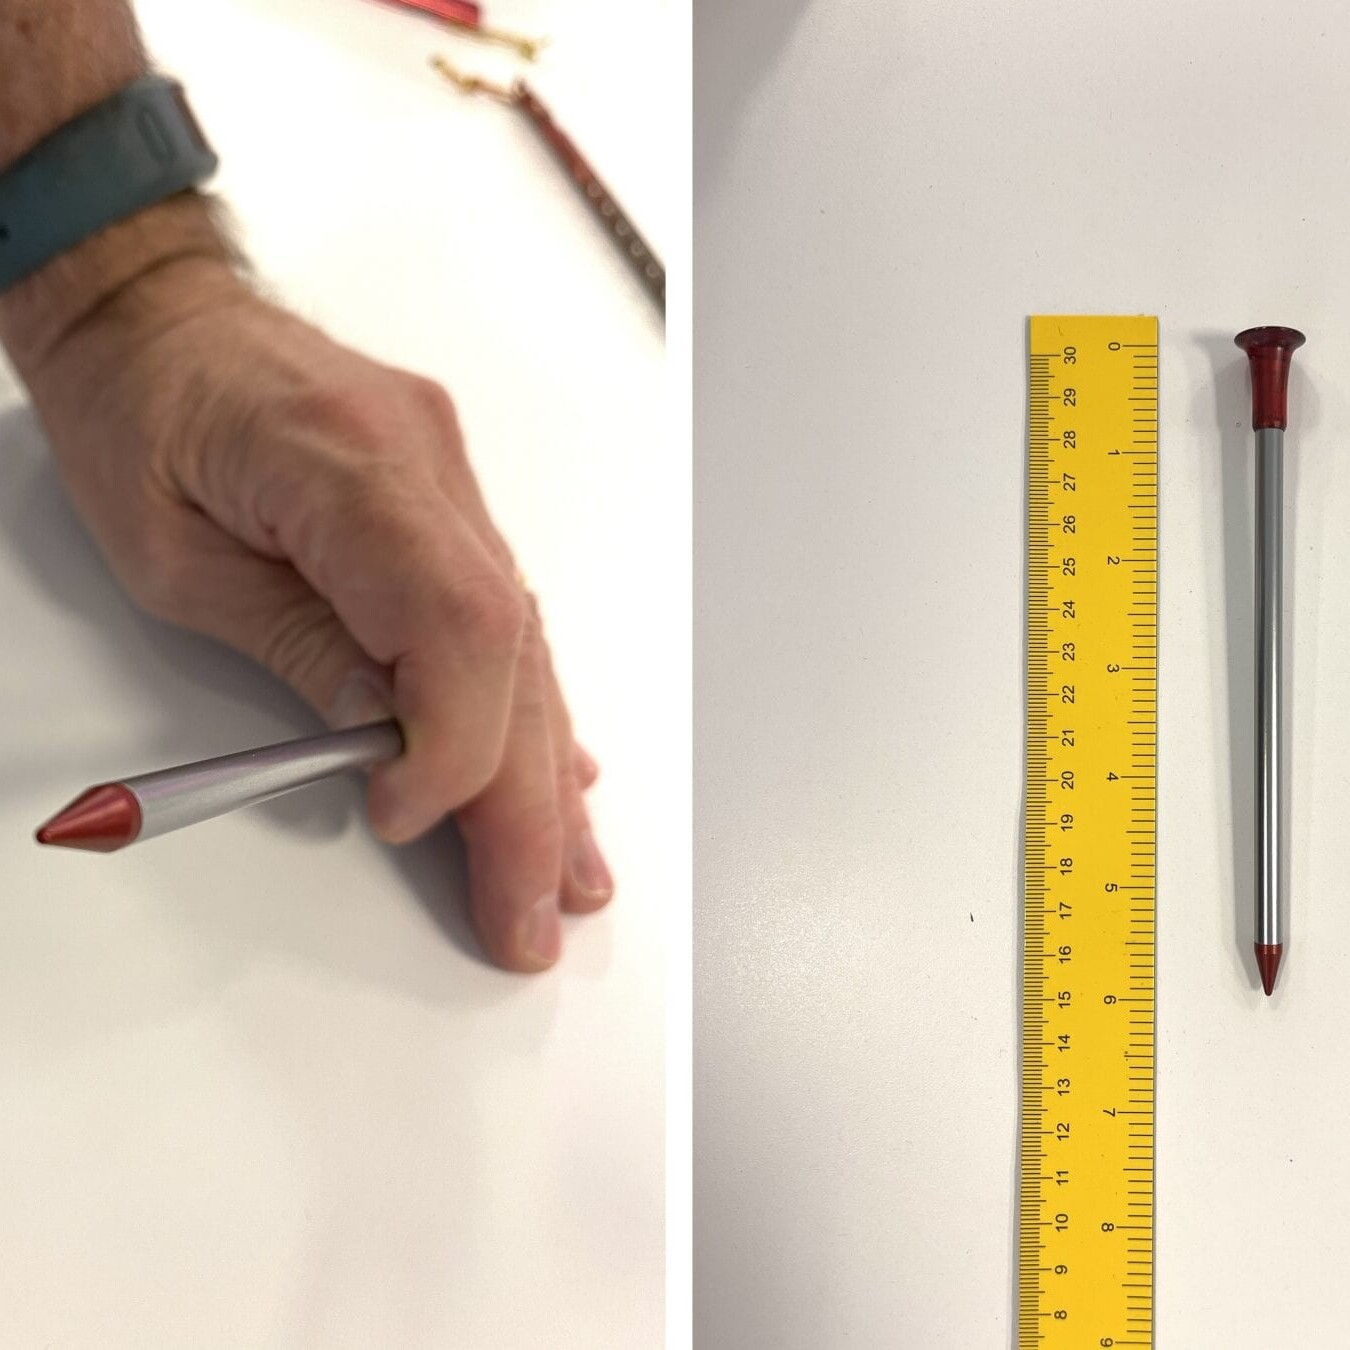 tent stake being measured next to a ruler